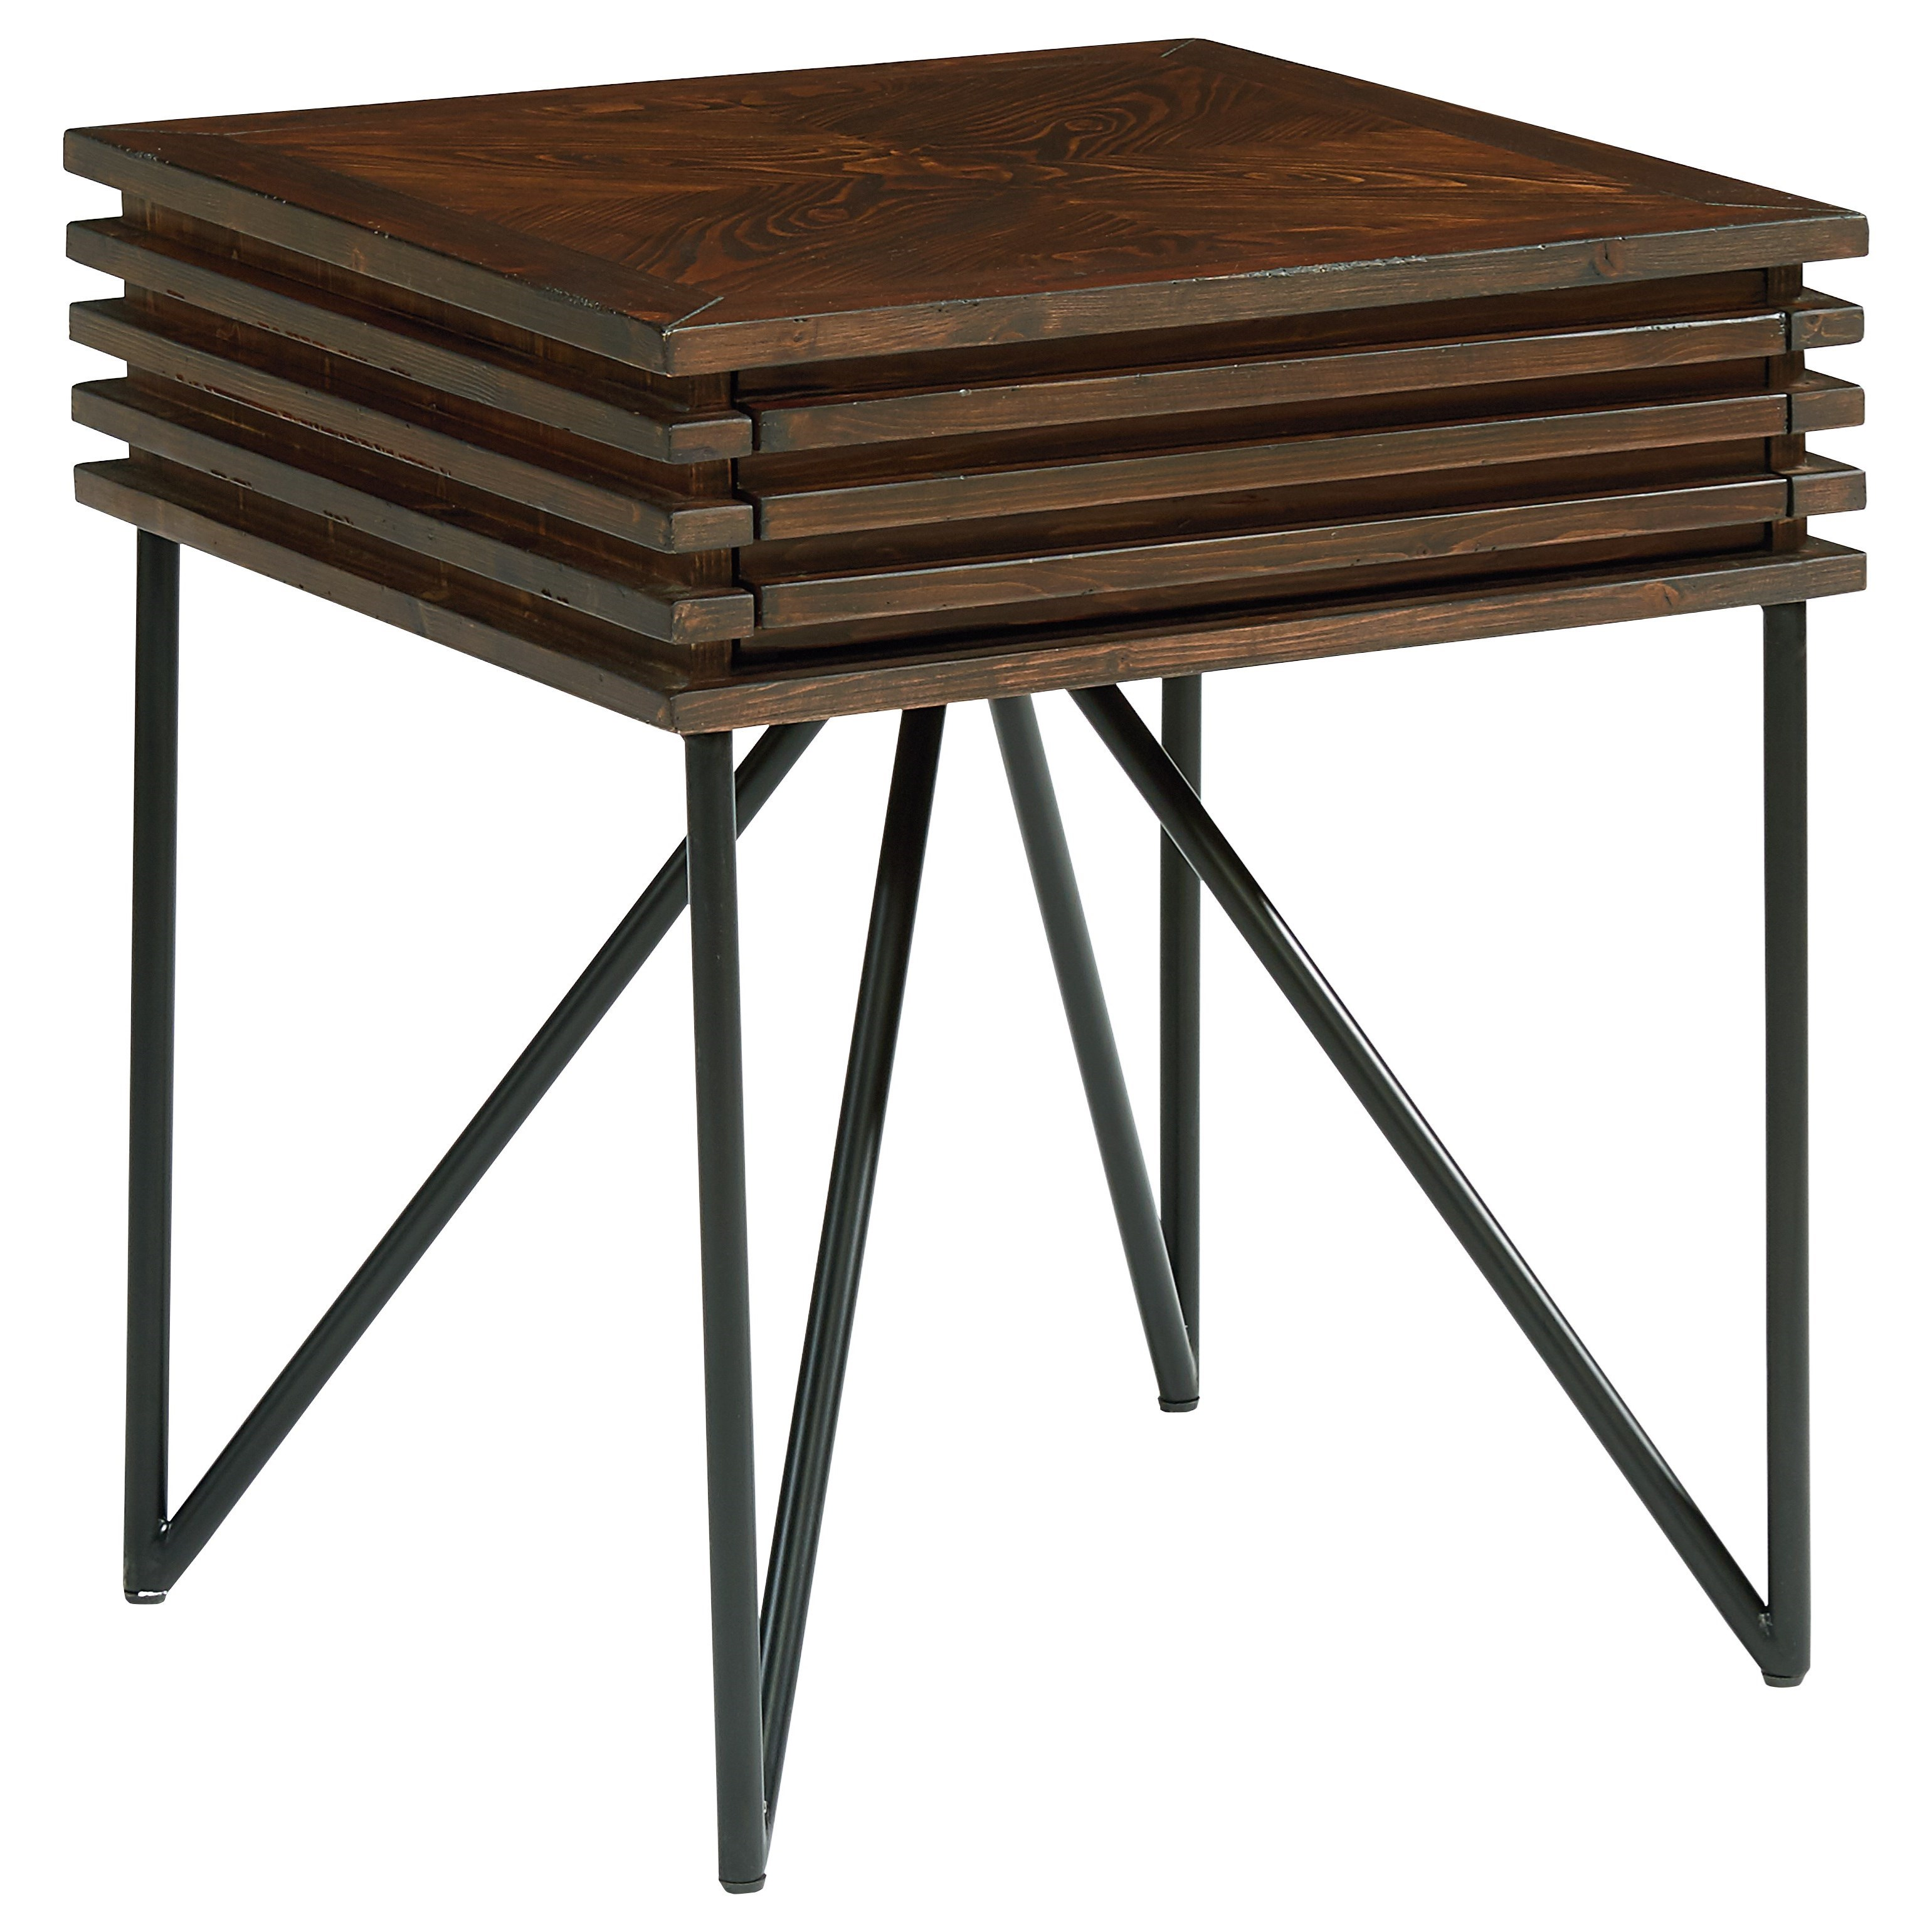 on four tables small your side drawer drawers complete design furniture legs table decoration square to black minimalist wooden chic with